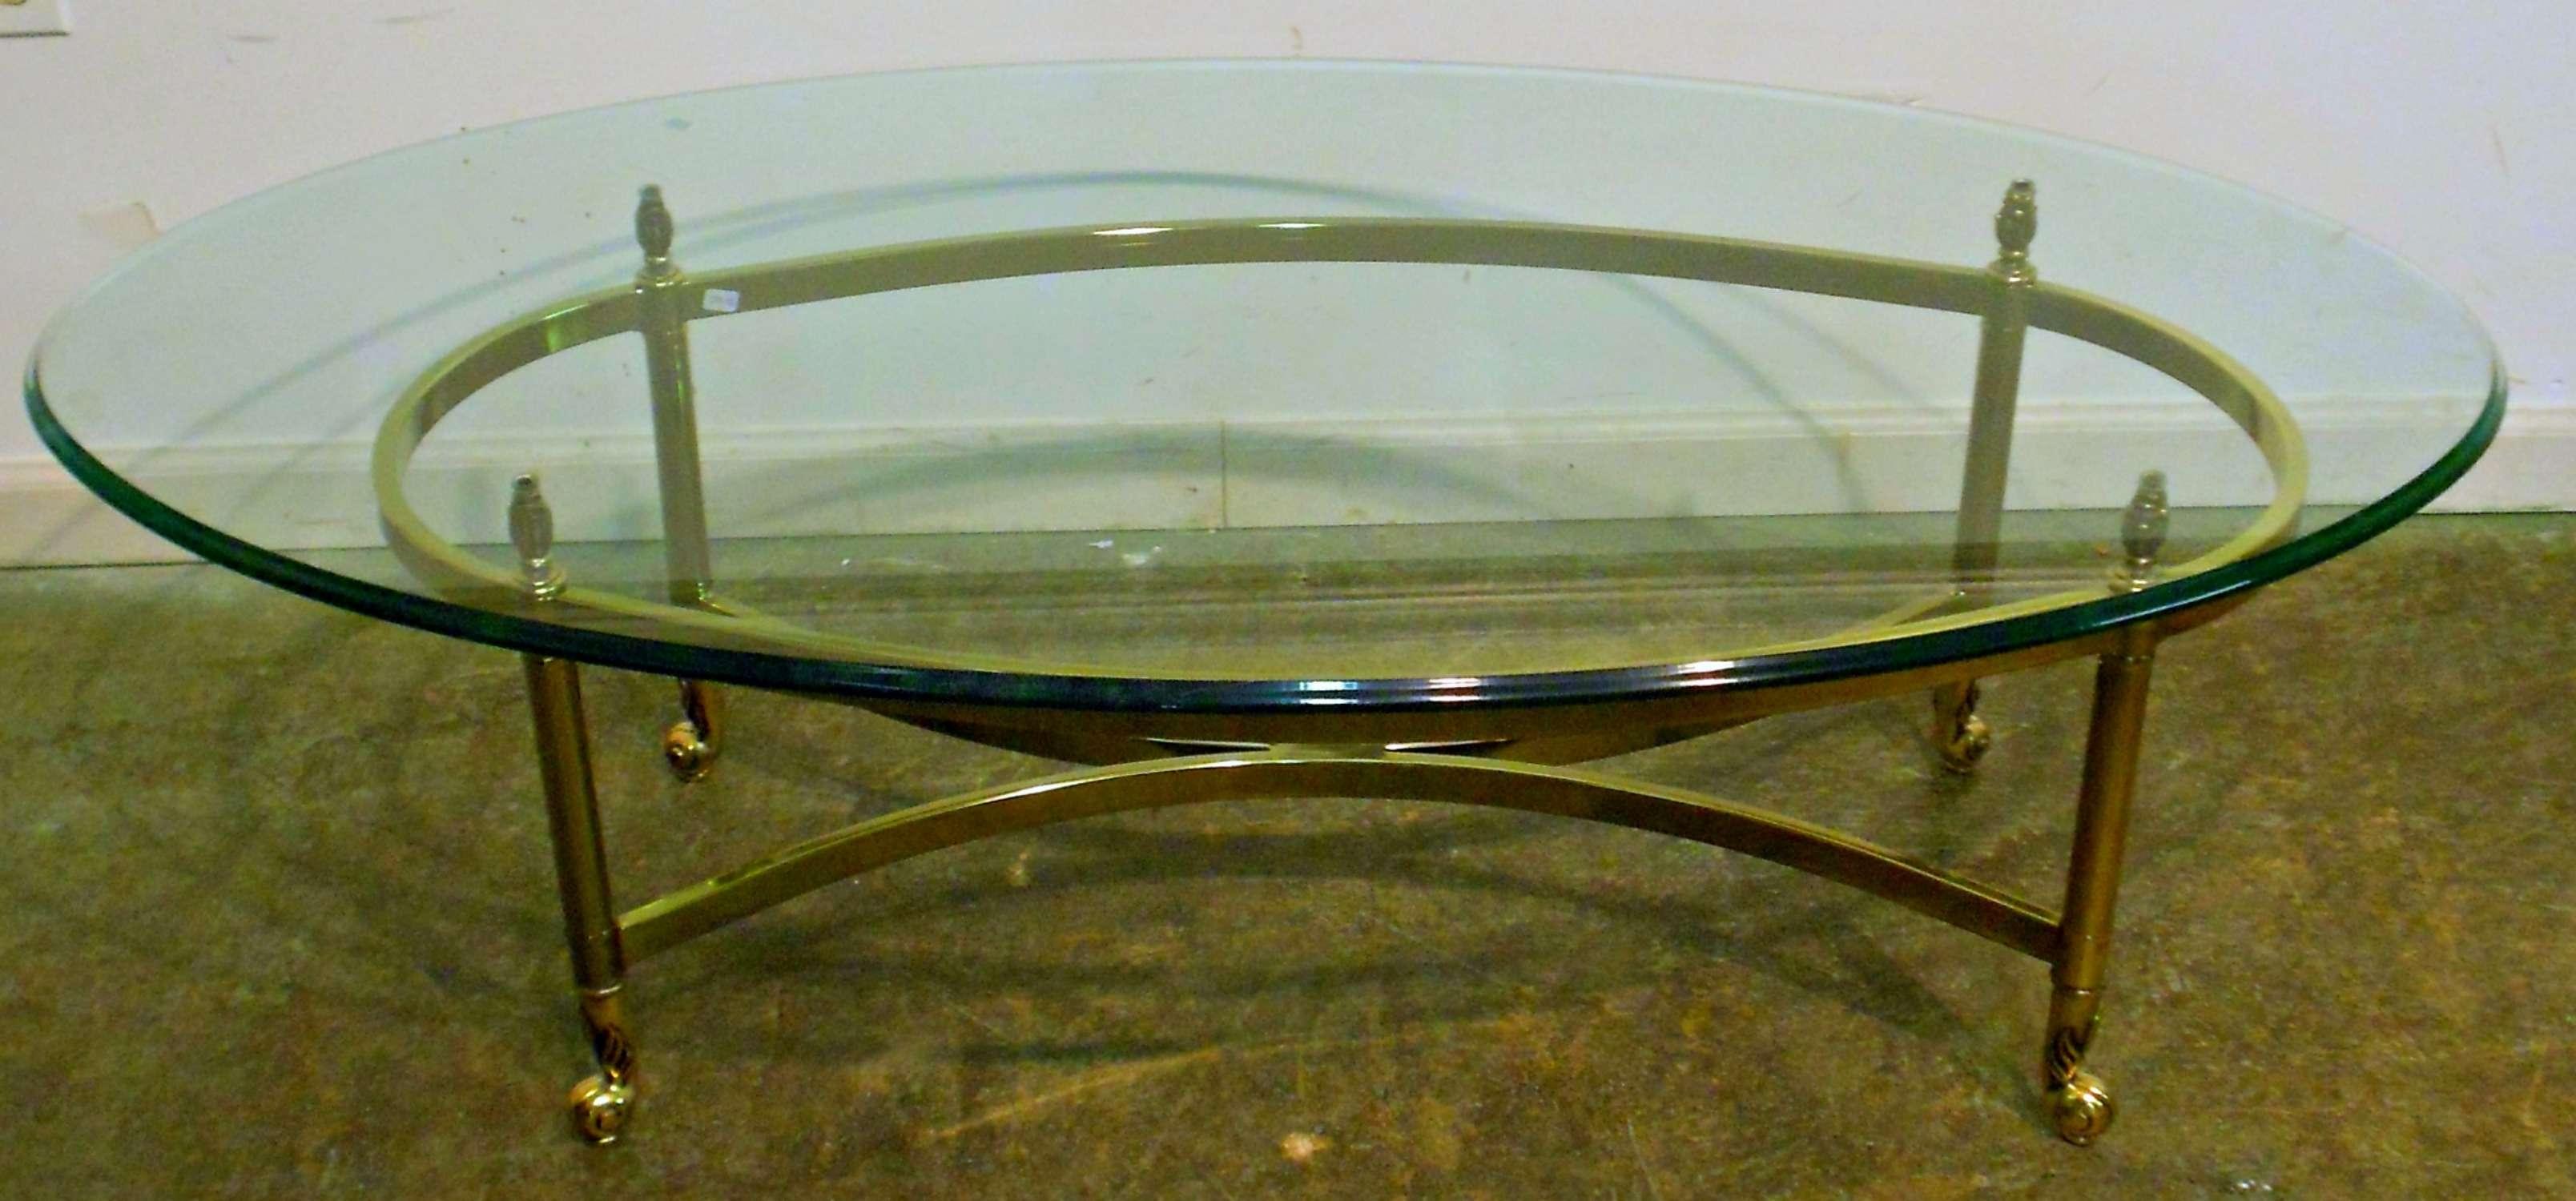 Preferred Large Glass Coffee Tables Intended For Oval Glass Coffee Table Set In Rummy Black Pyramid Design Oval (View 11 of 20)